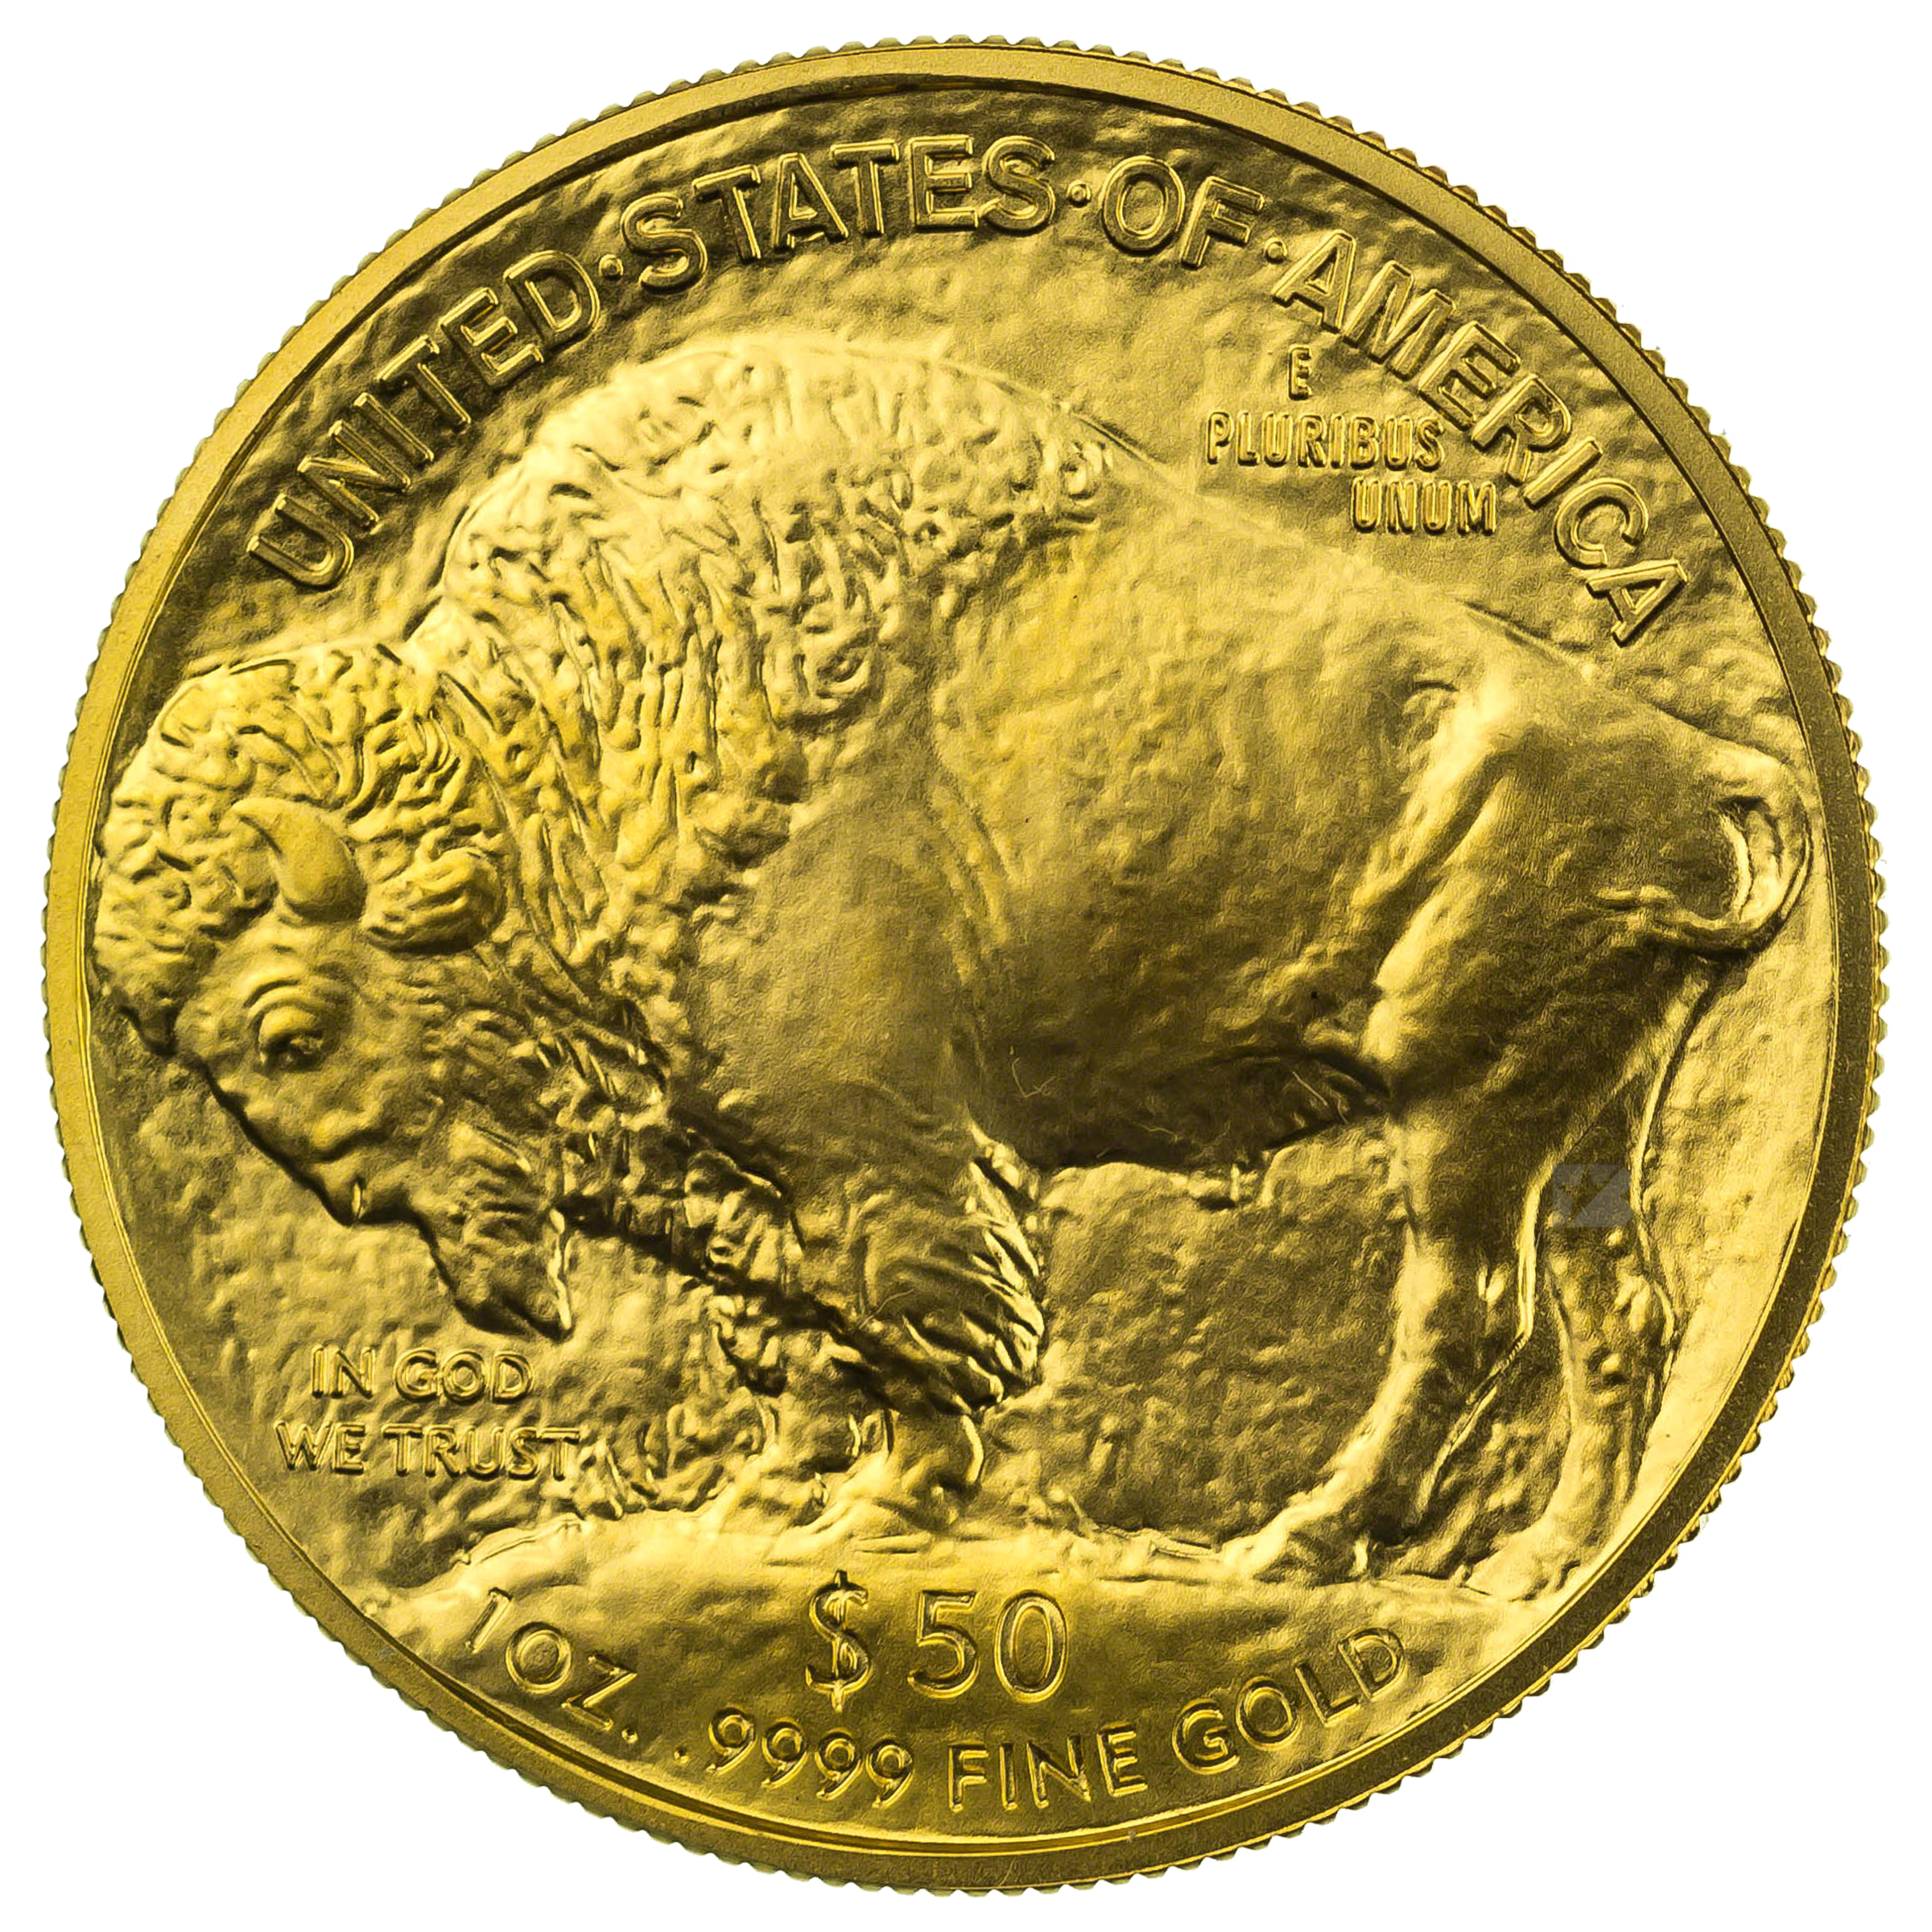 American Gold Buffalo 2014 1 Oz